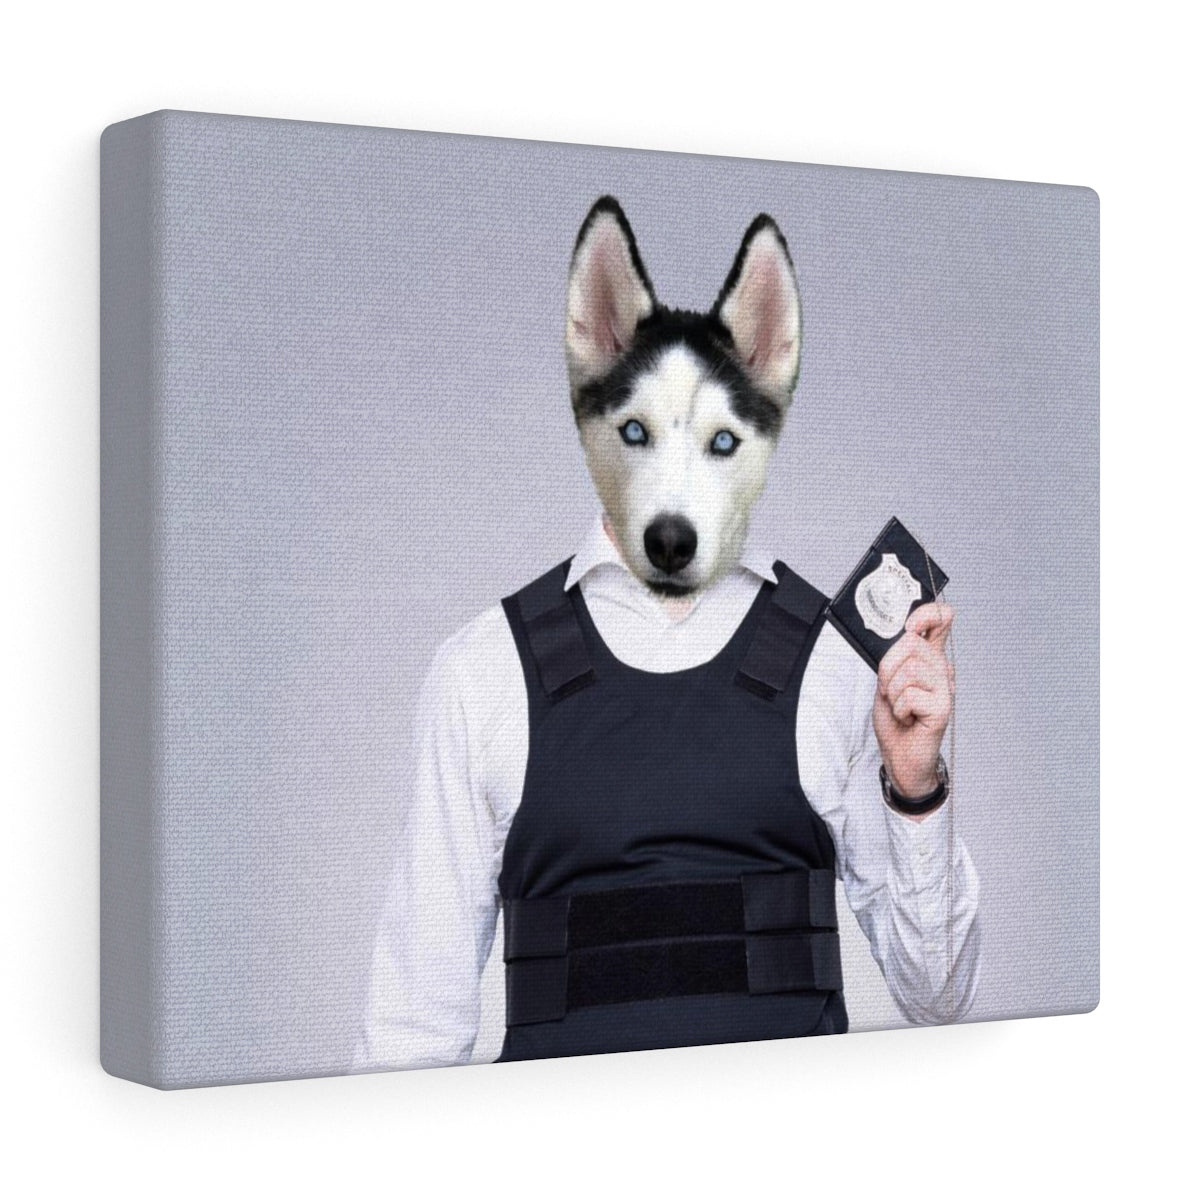 The Pawlice - Custom Pet Canvas